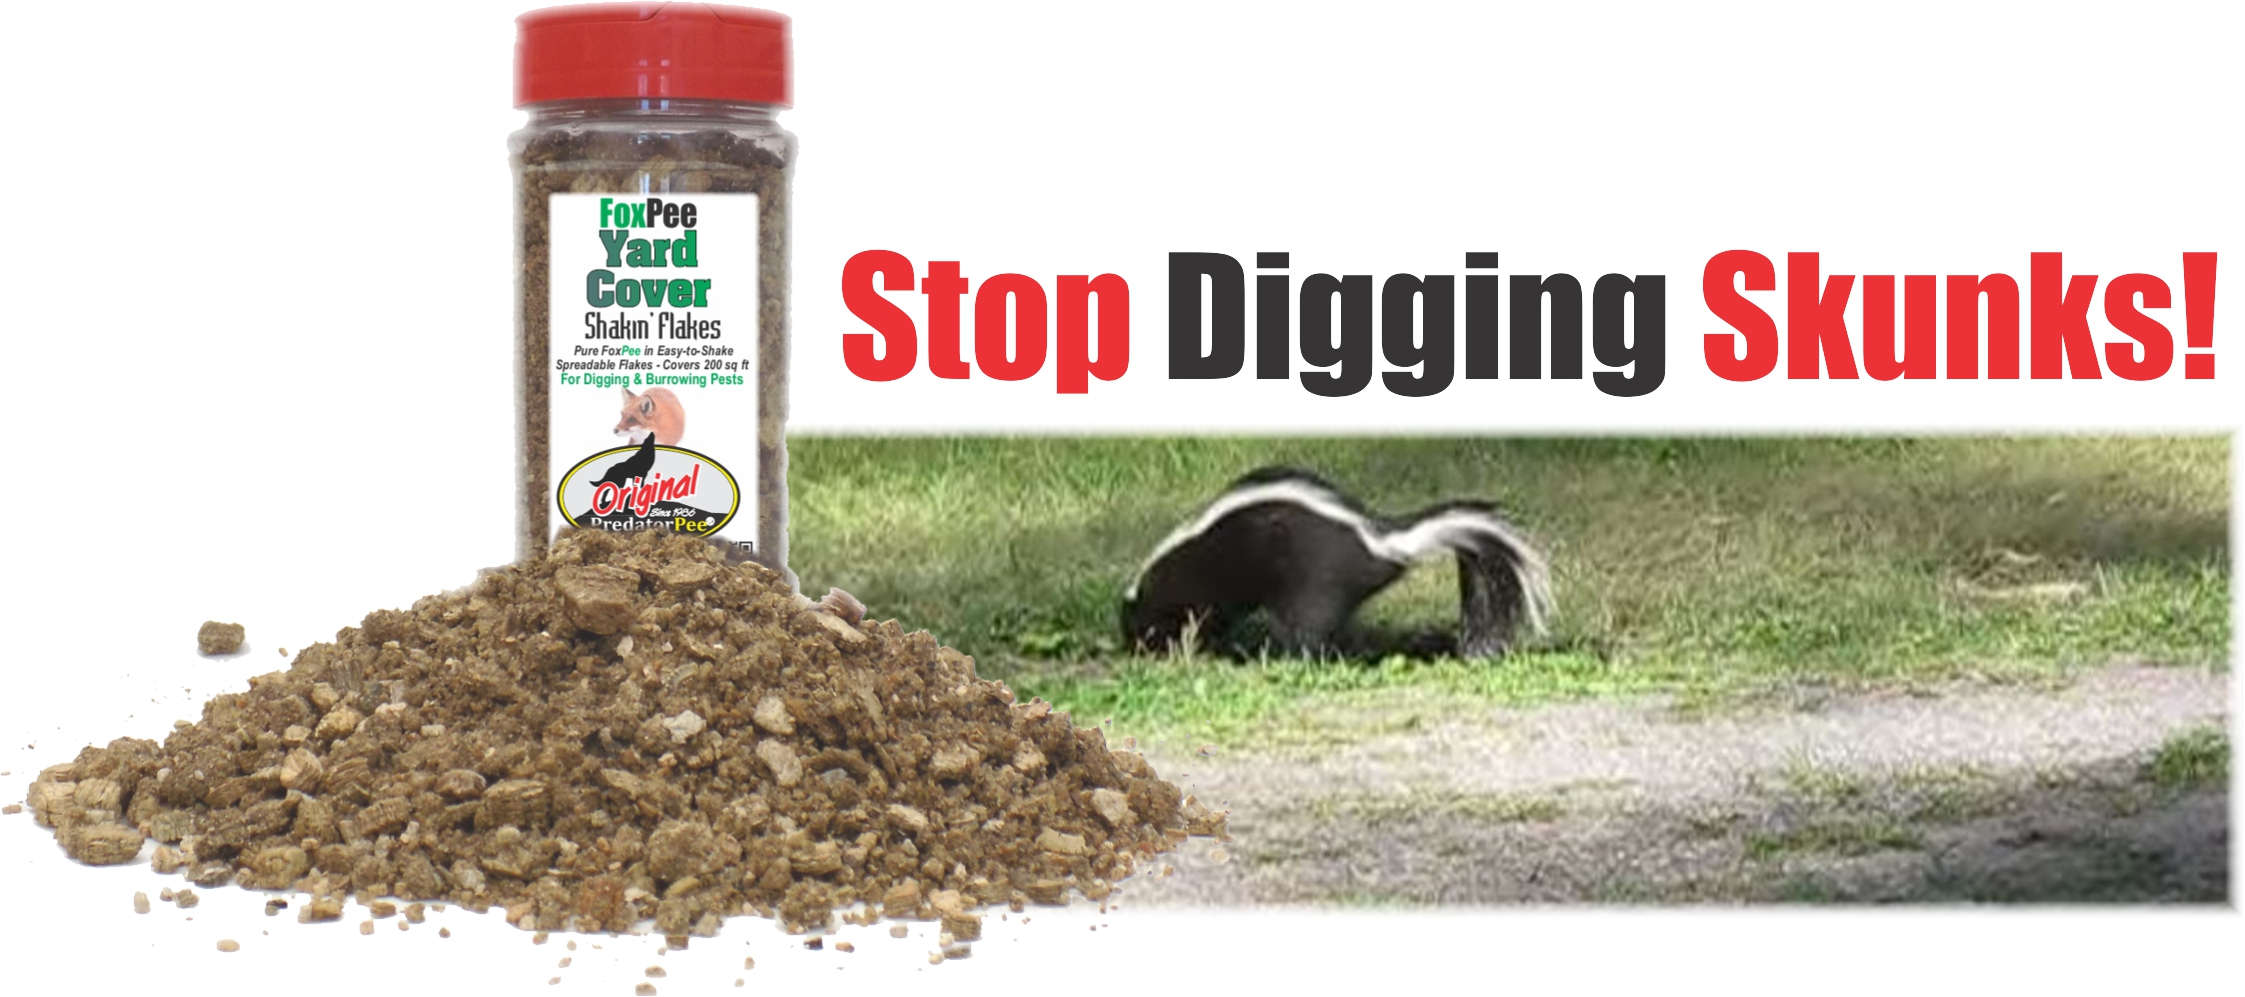 How to Stop Skunks from Digging up Lawn | Yard Skunk Repellent